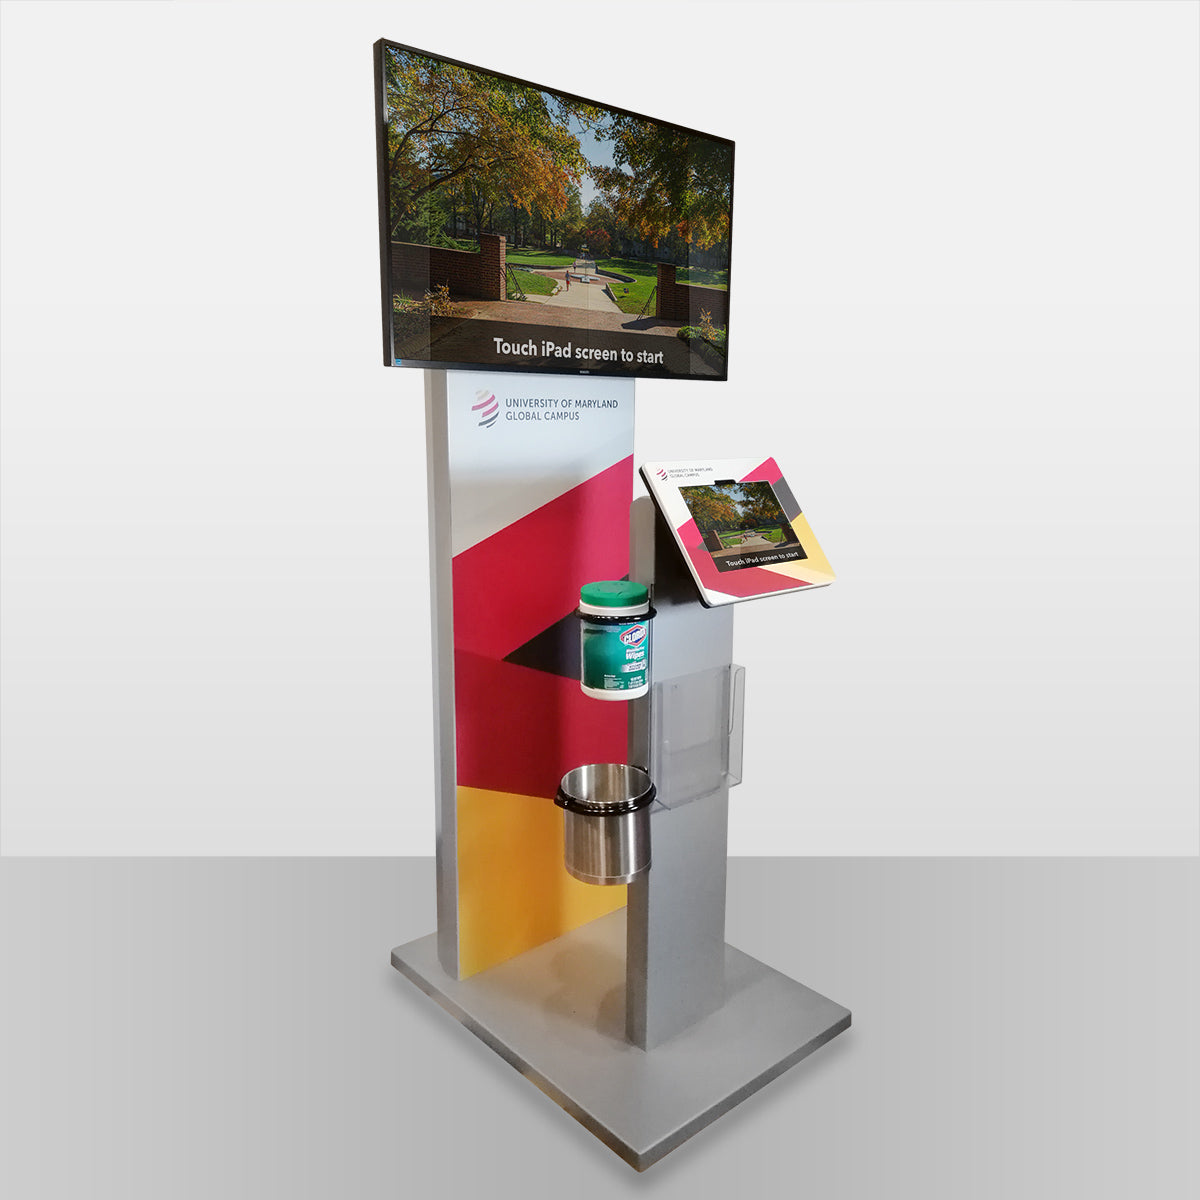 A freestanding tablet kiosk with an external monitor attachment. The tablet screen is mirrored to the external screen for high visibility.